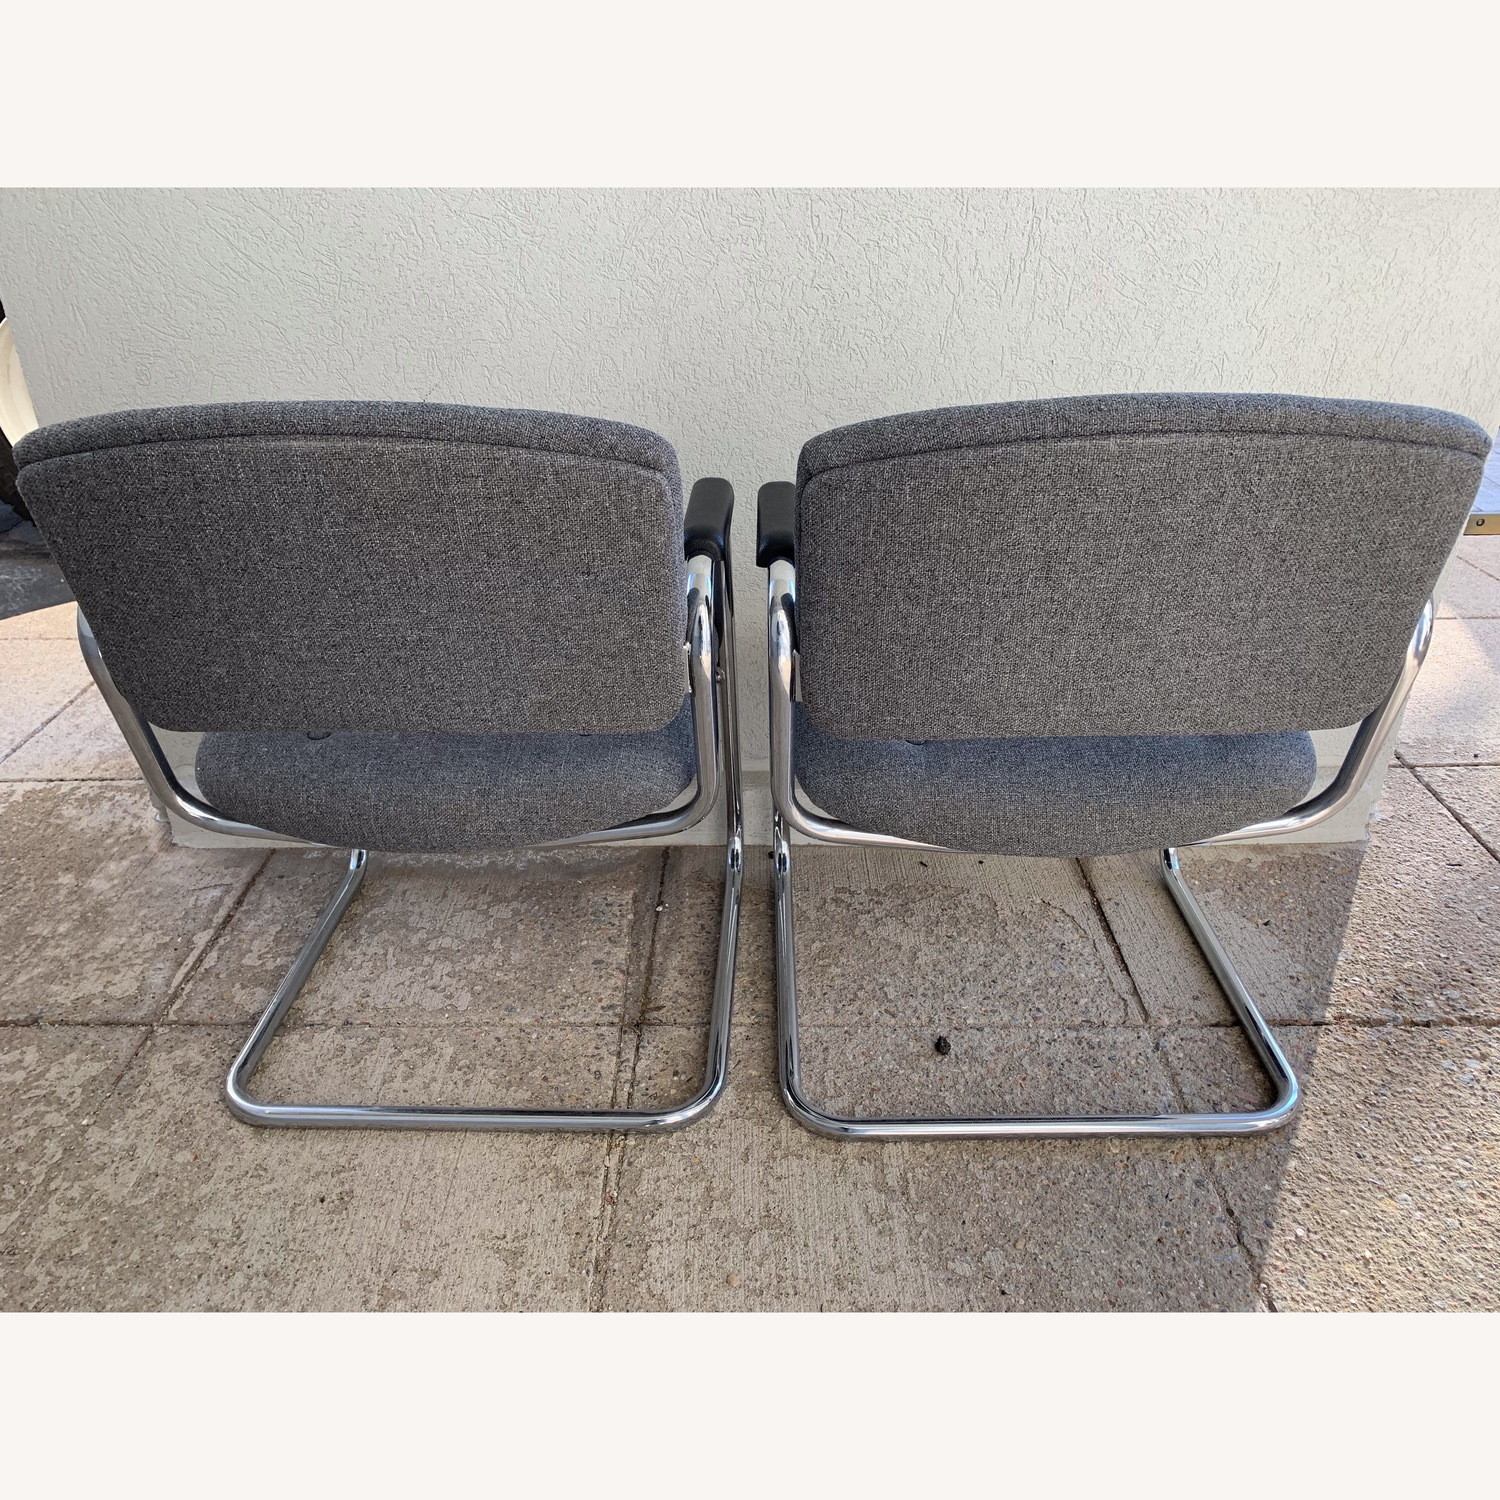 United Chair Company Cantilever Chairs - image-6